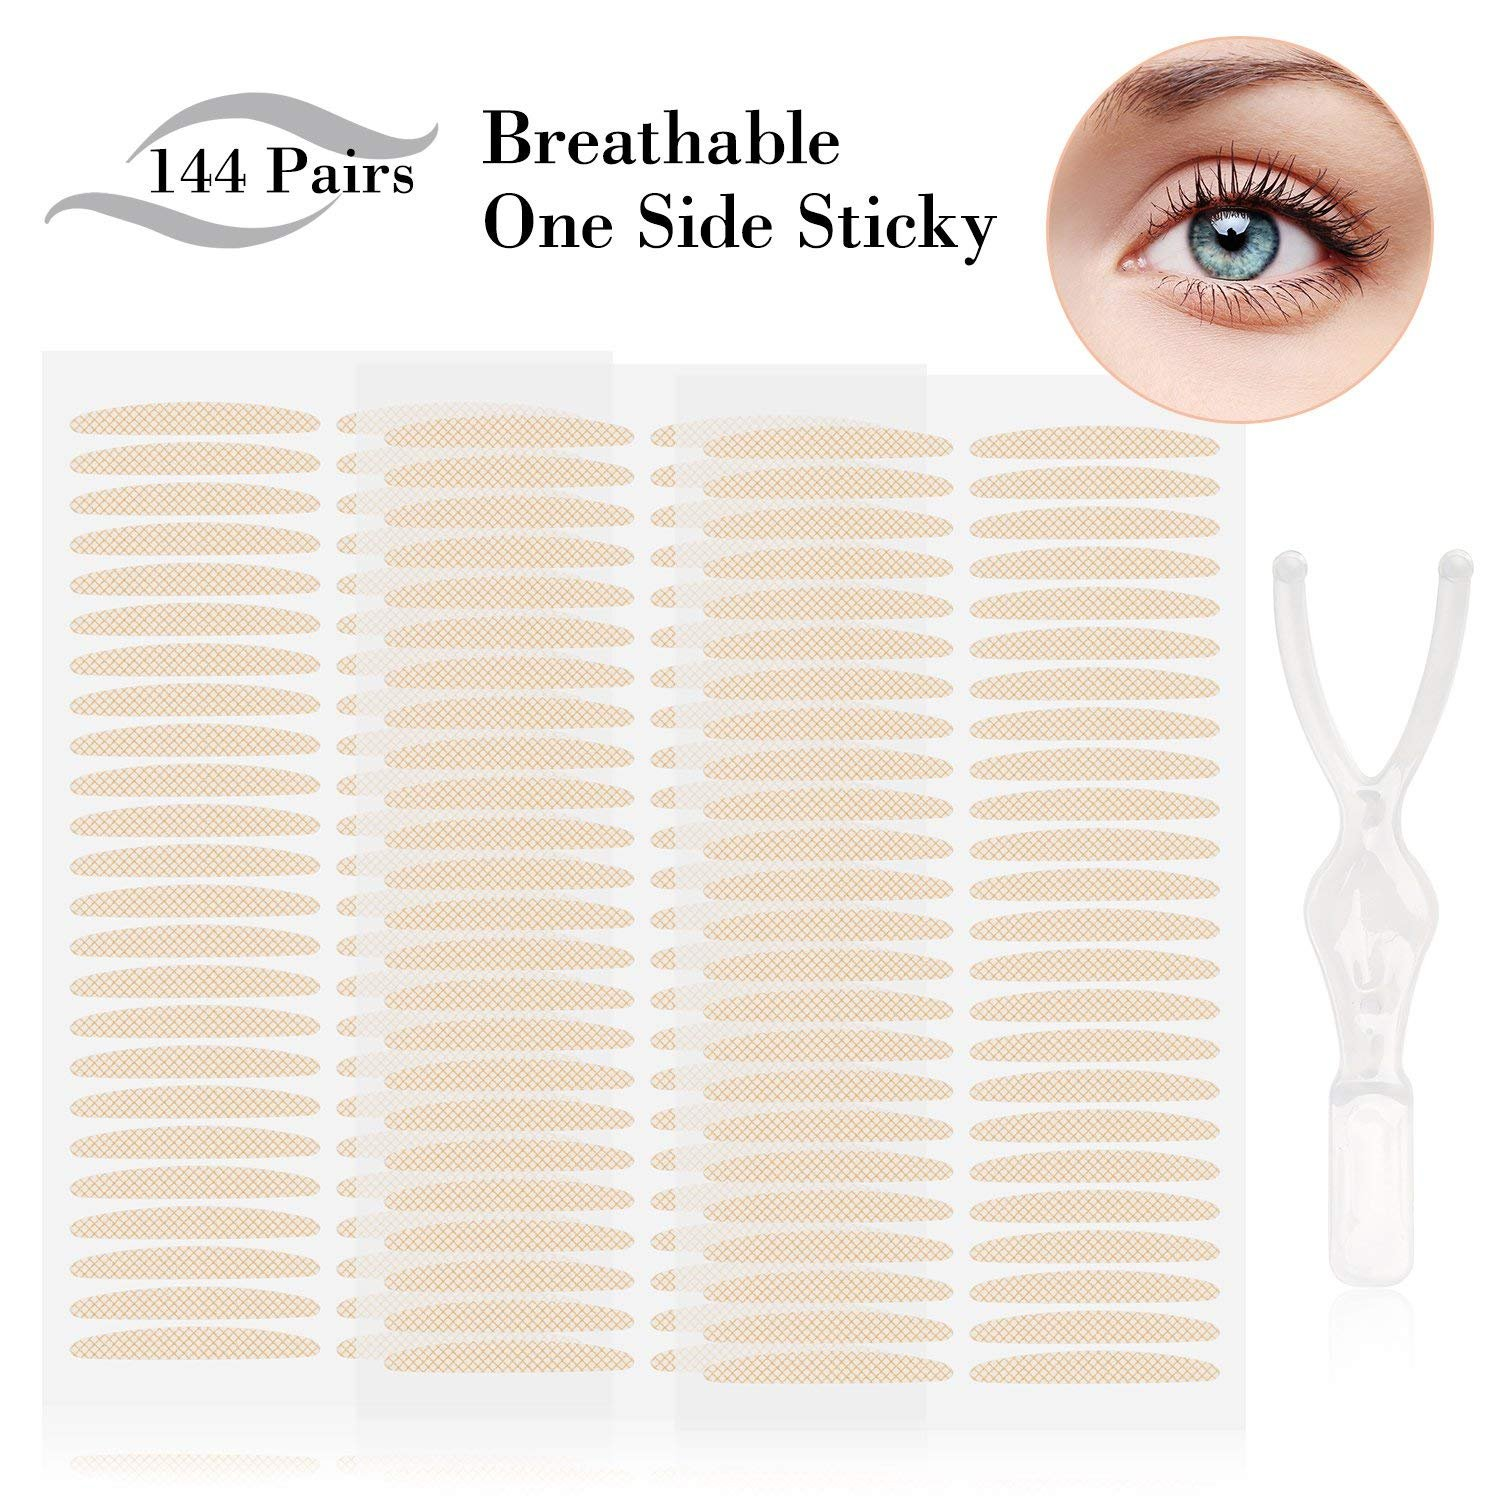 144 Pairs Invisible Breathable Fiber Eyelid Tape Stickers - Instant Eye Lift without Surgery - Perfect for Hooded, Droopy, Uneven, or Mono-eyelids (144 Pairs,M Size) Cayanmydery